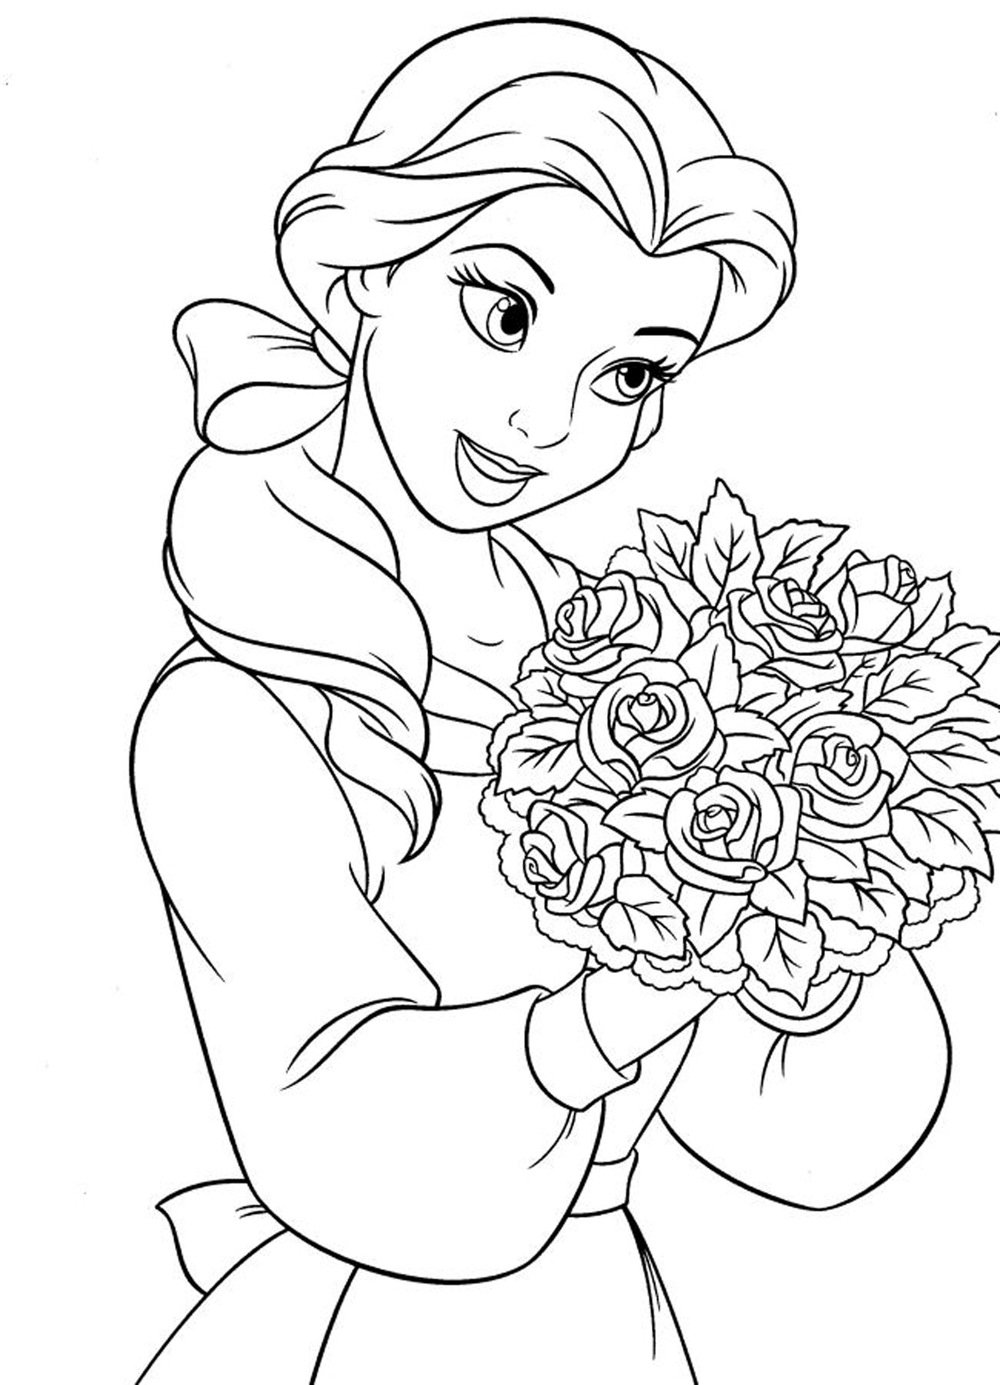 Disney Color Book At Best All Coloring Pages Tips